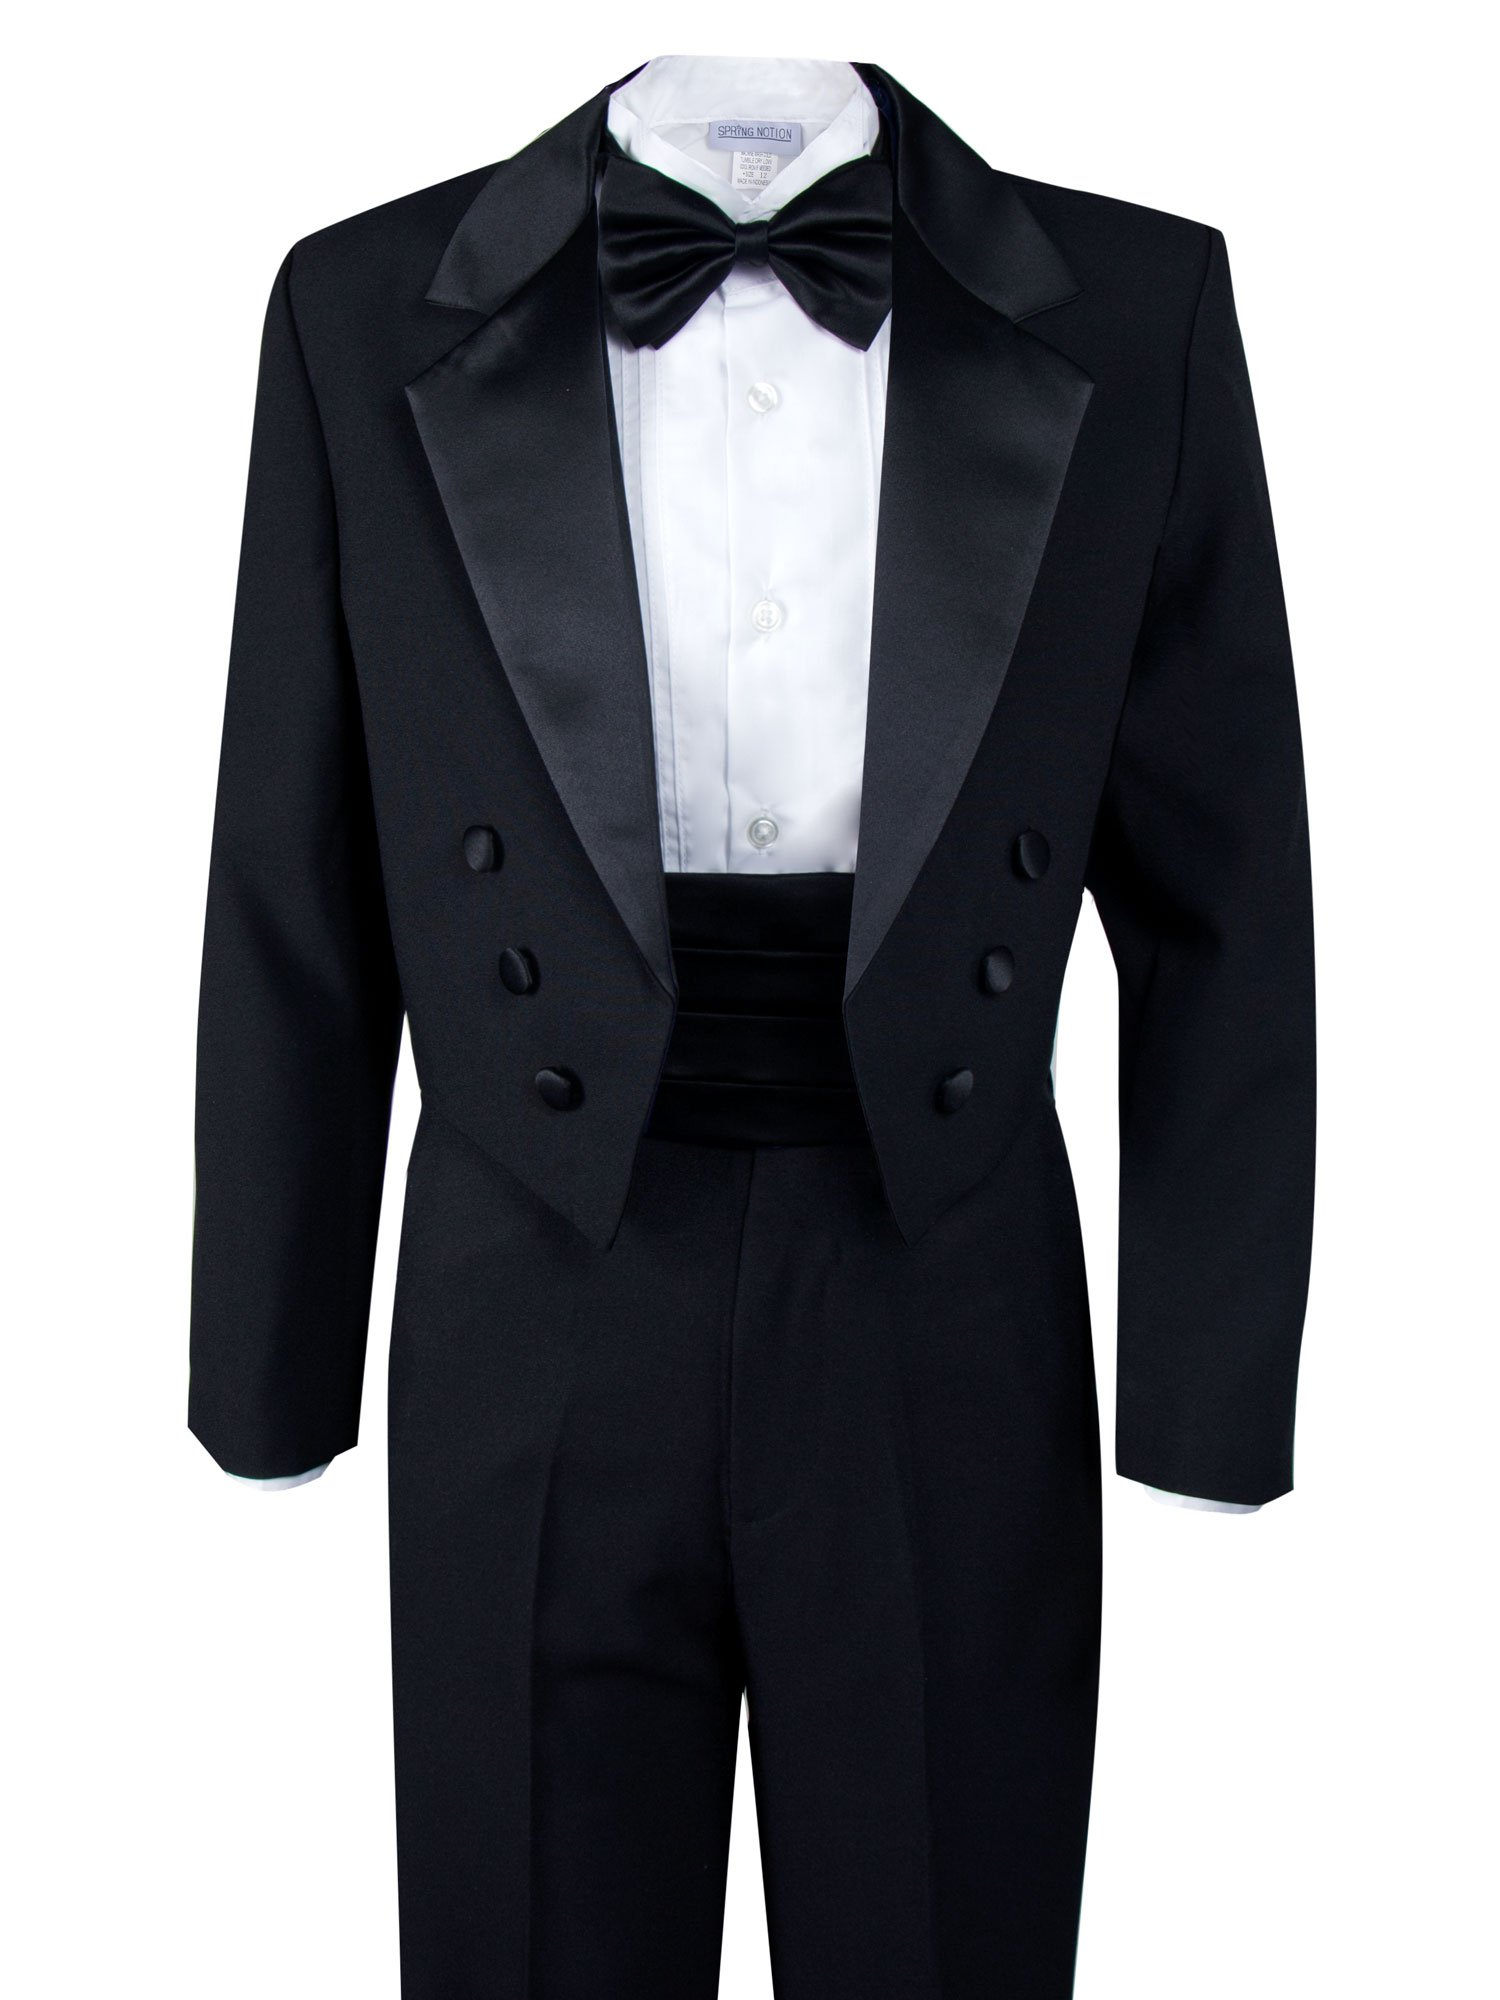 Spring Notion Boys' Black Classic Tuxedo with Tail Extra Large/18-24 Months